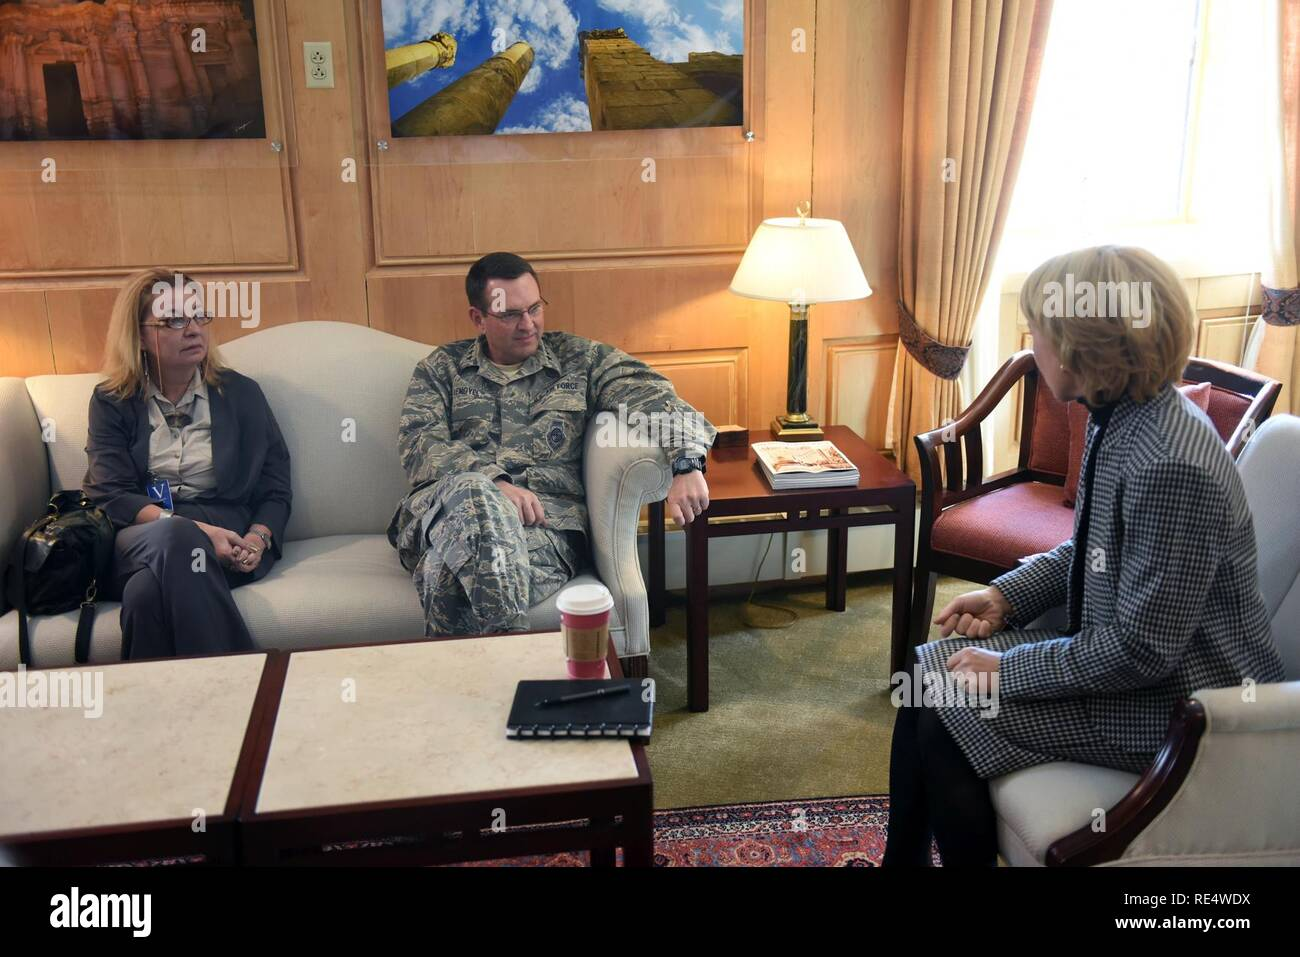 Ambassador Tatiana Gfoeller, left, foreign policy advisor to the chief of the National Guard Bureau, and Air Force Gen. Joseph Lengyel, chief, National Guard Bureau, talk with Ambassador Alice Wells, U.S. ambassador to the Hashemite Kingdom of Jordan, during a Thanksgiving troop visit, Nov. 27, 2016. - Stock Image